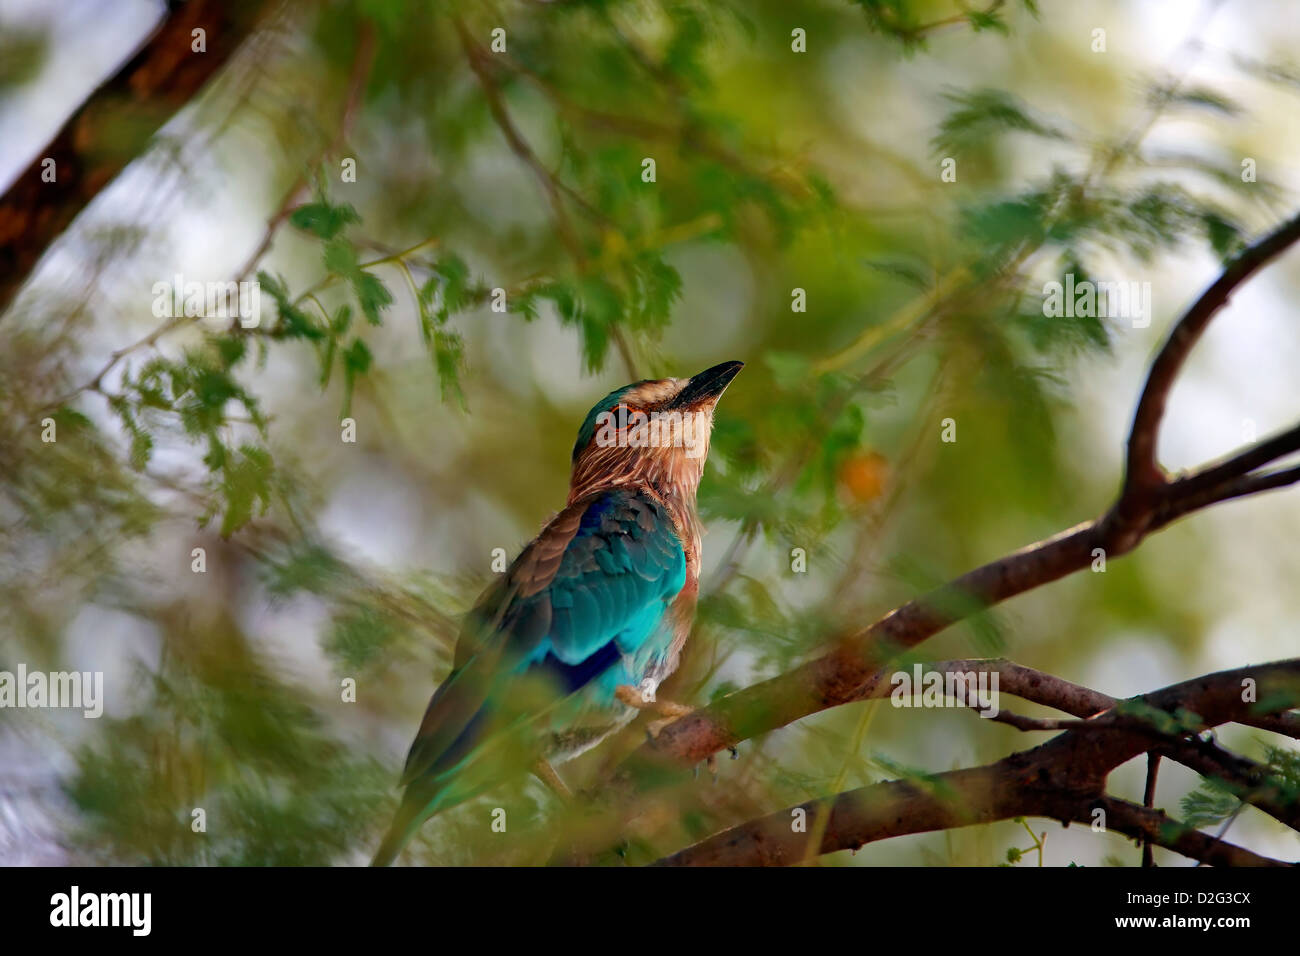 Indian Roller or Blue Jay - Stock Image